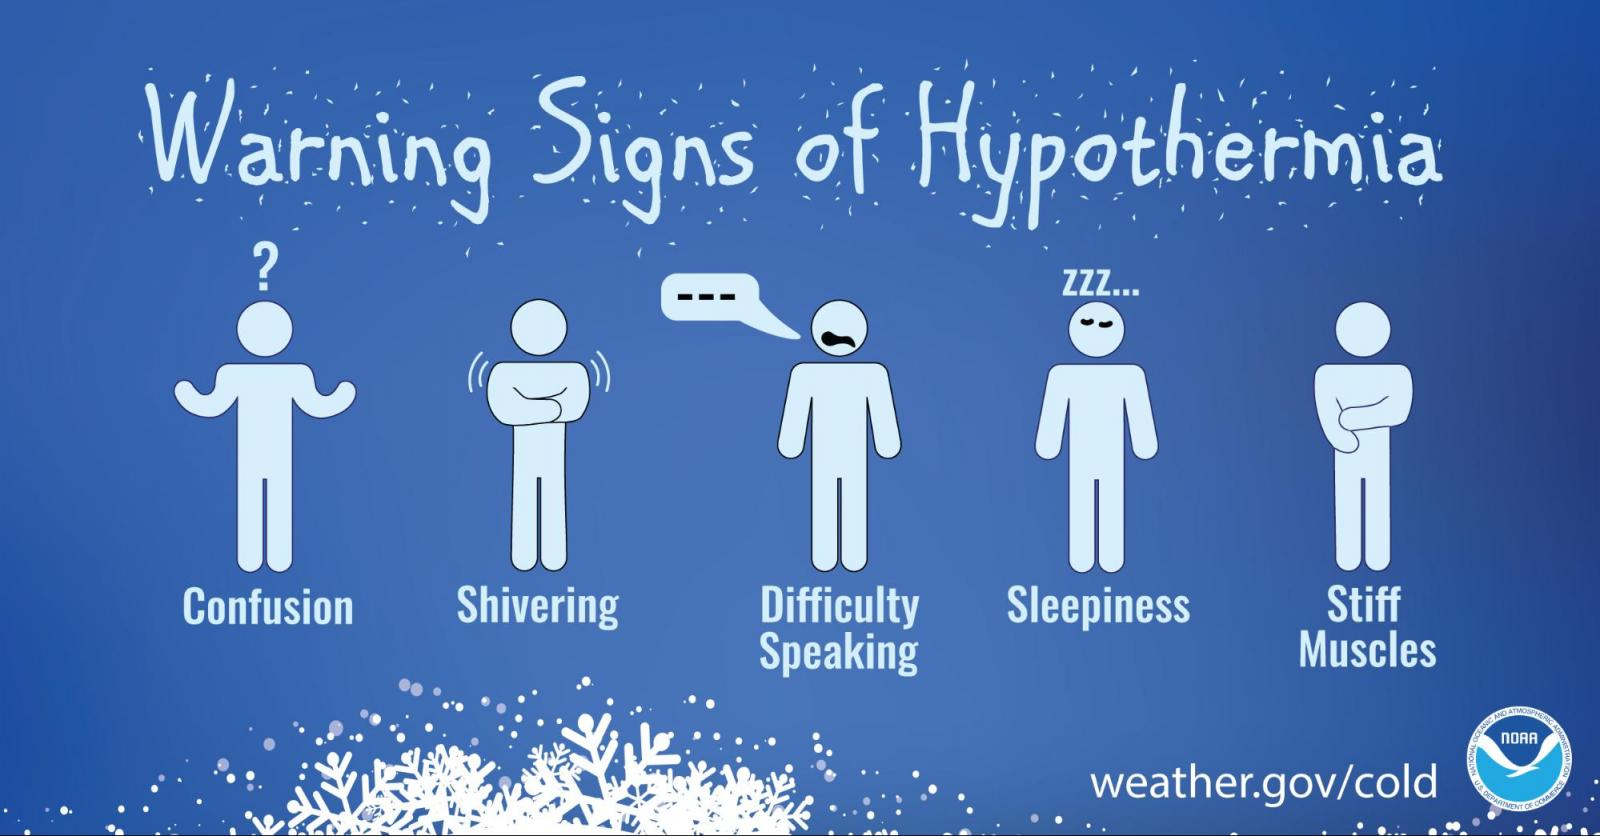 Warning signs of hypothermia